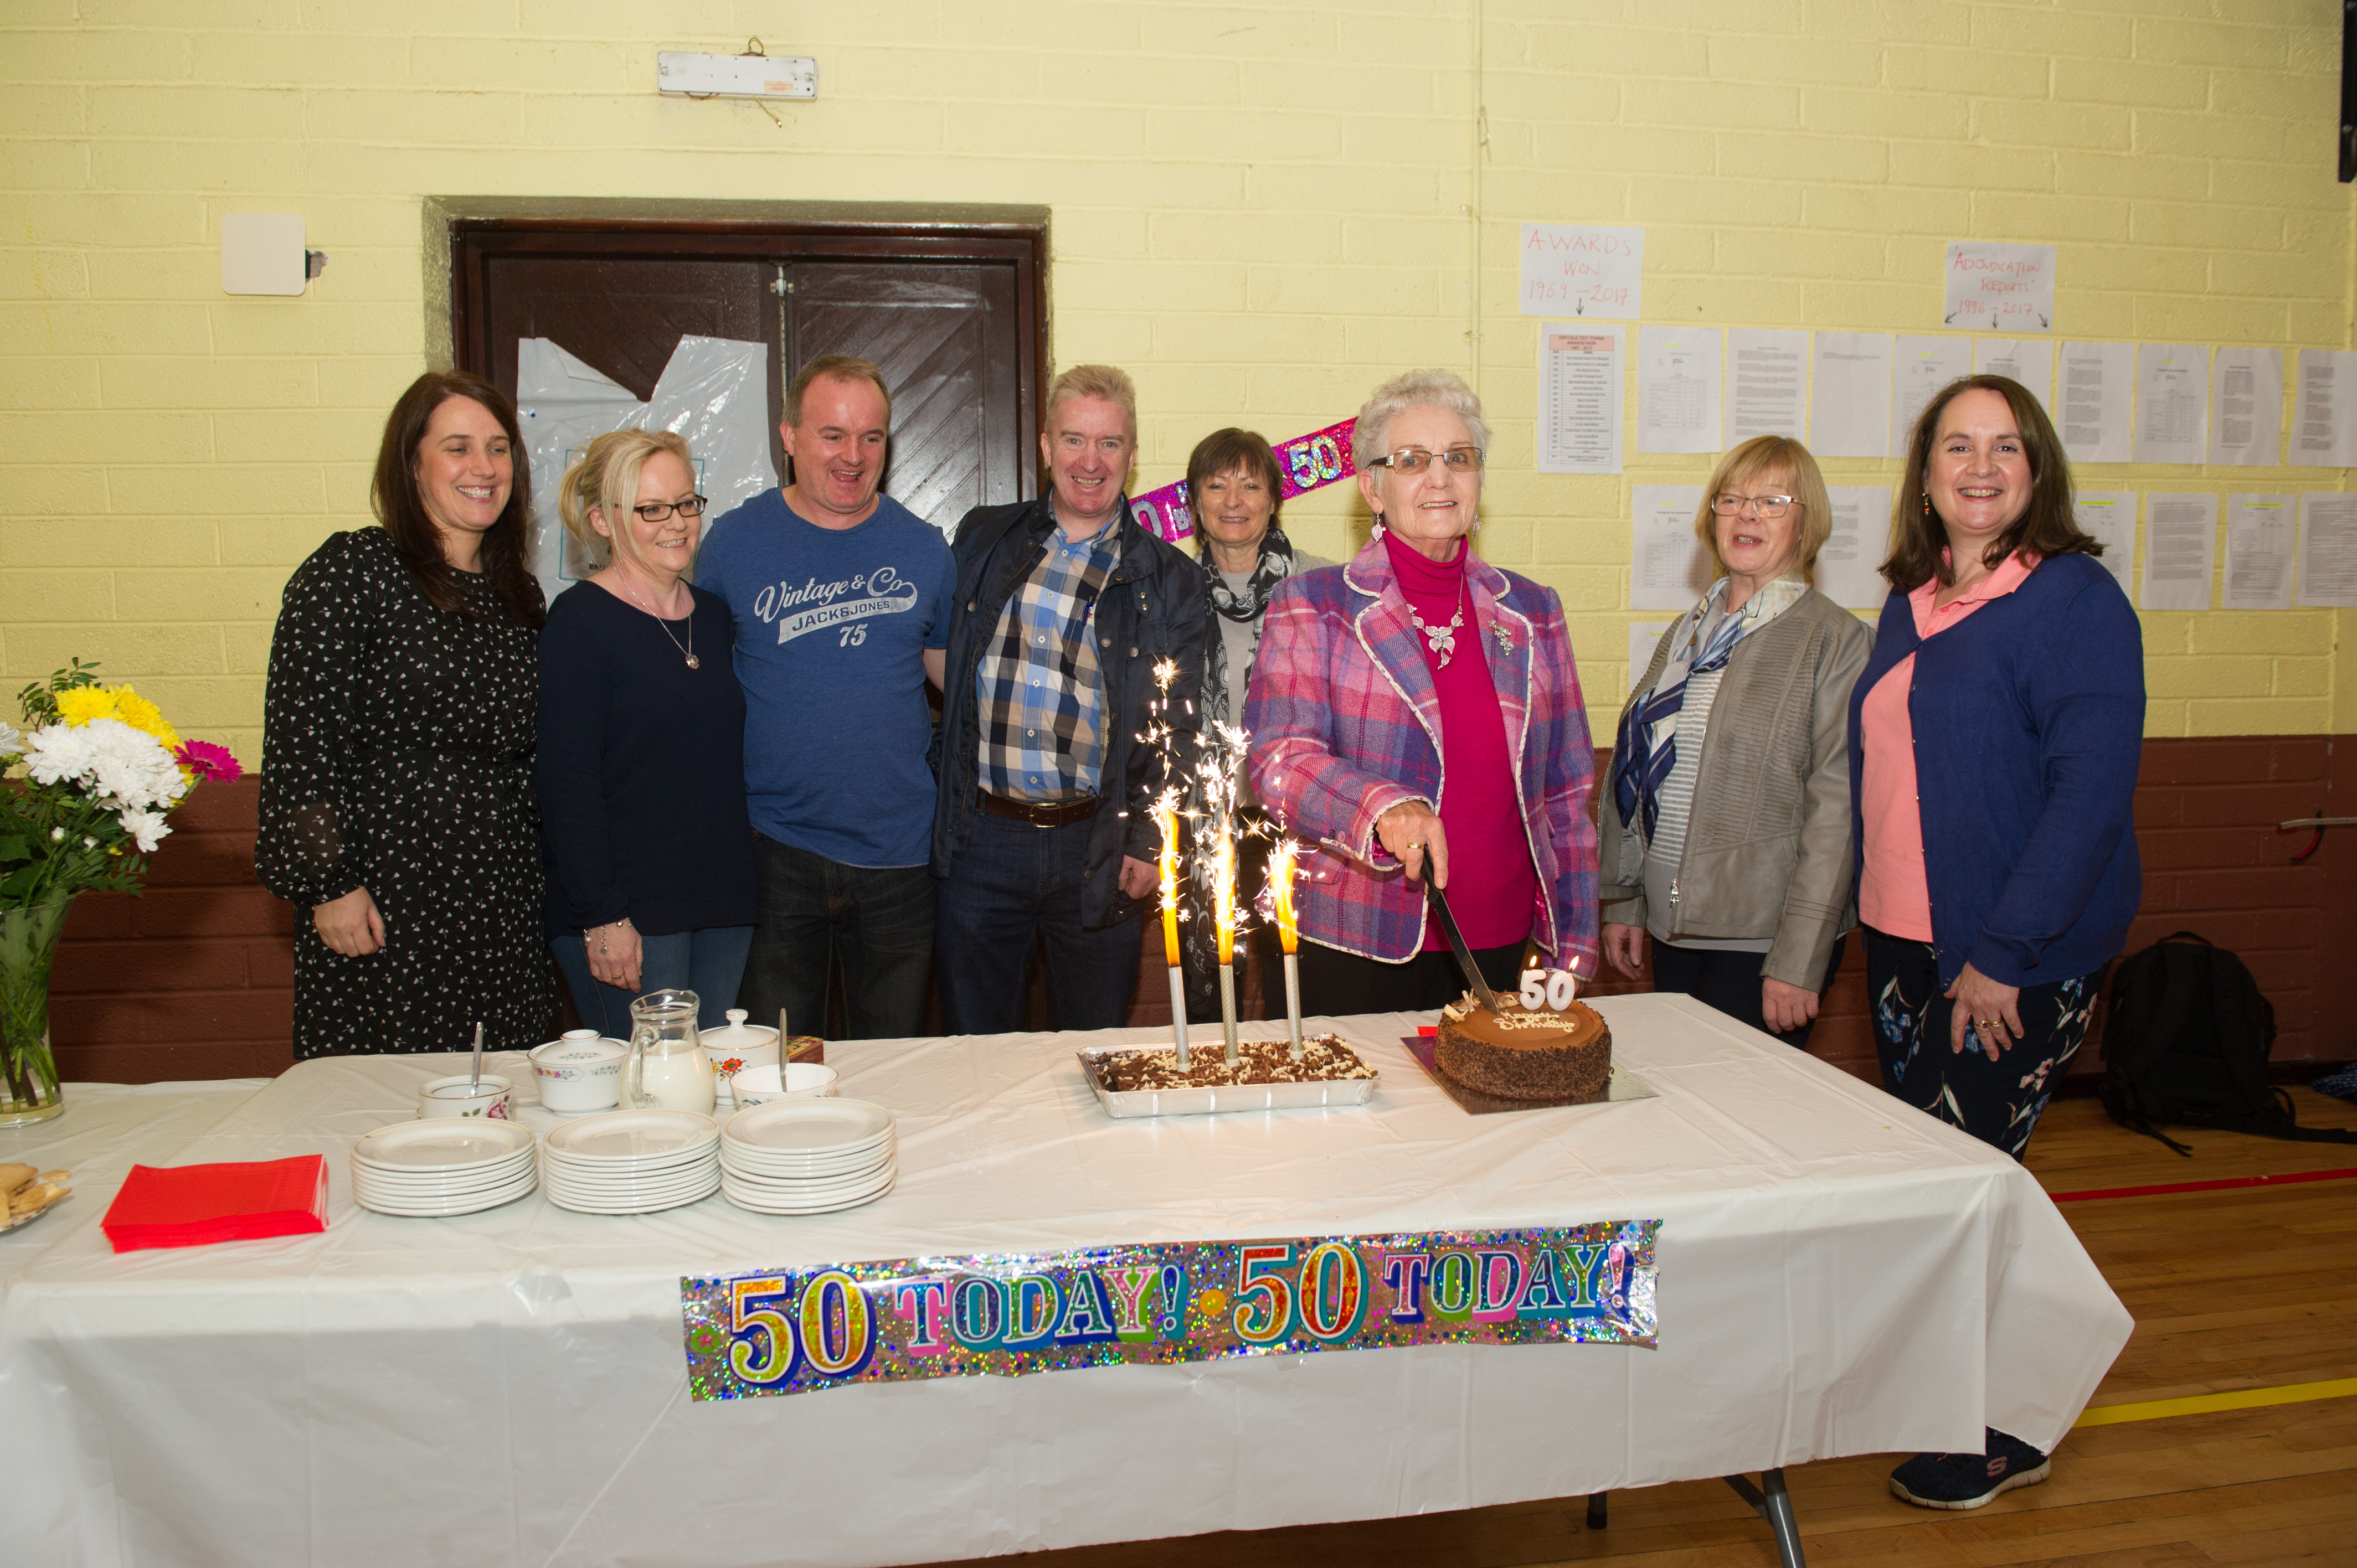 Angela McCaffrey cutting a cake at the Emyvale Tidy Town's 50th anniversary celebrations last Sunday. Included in the photo are (L-R) Patrica Ryan, Karen Fields, Enda Fields, John Finn, chairman, Bernie O'Flagherty, Waters & Communities Office, Angela McCaffrey, Norah Ryan and Mary Flynn. ©Rory Geary/The Northern Standard